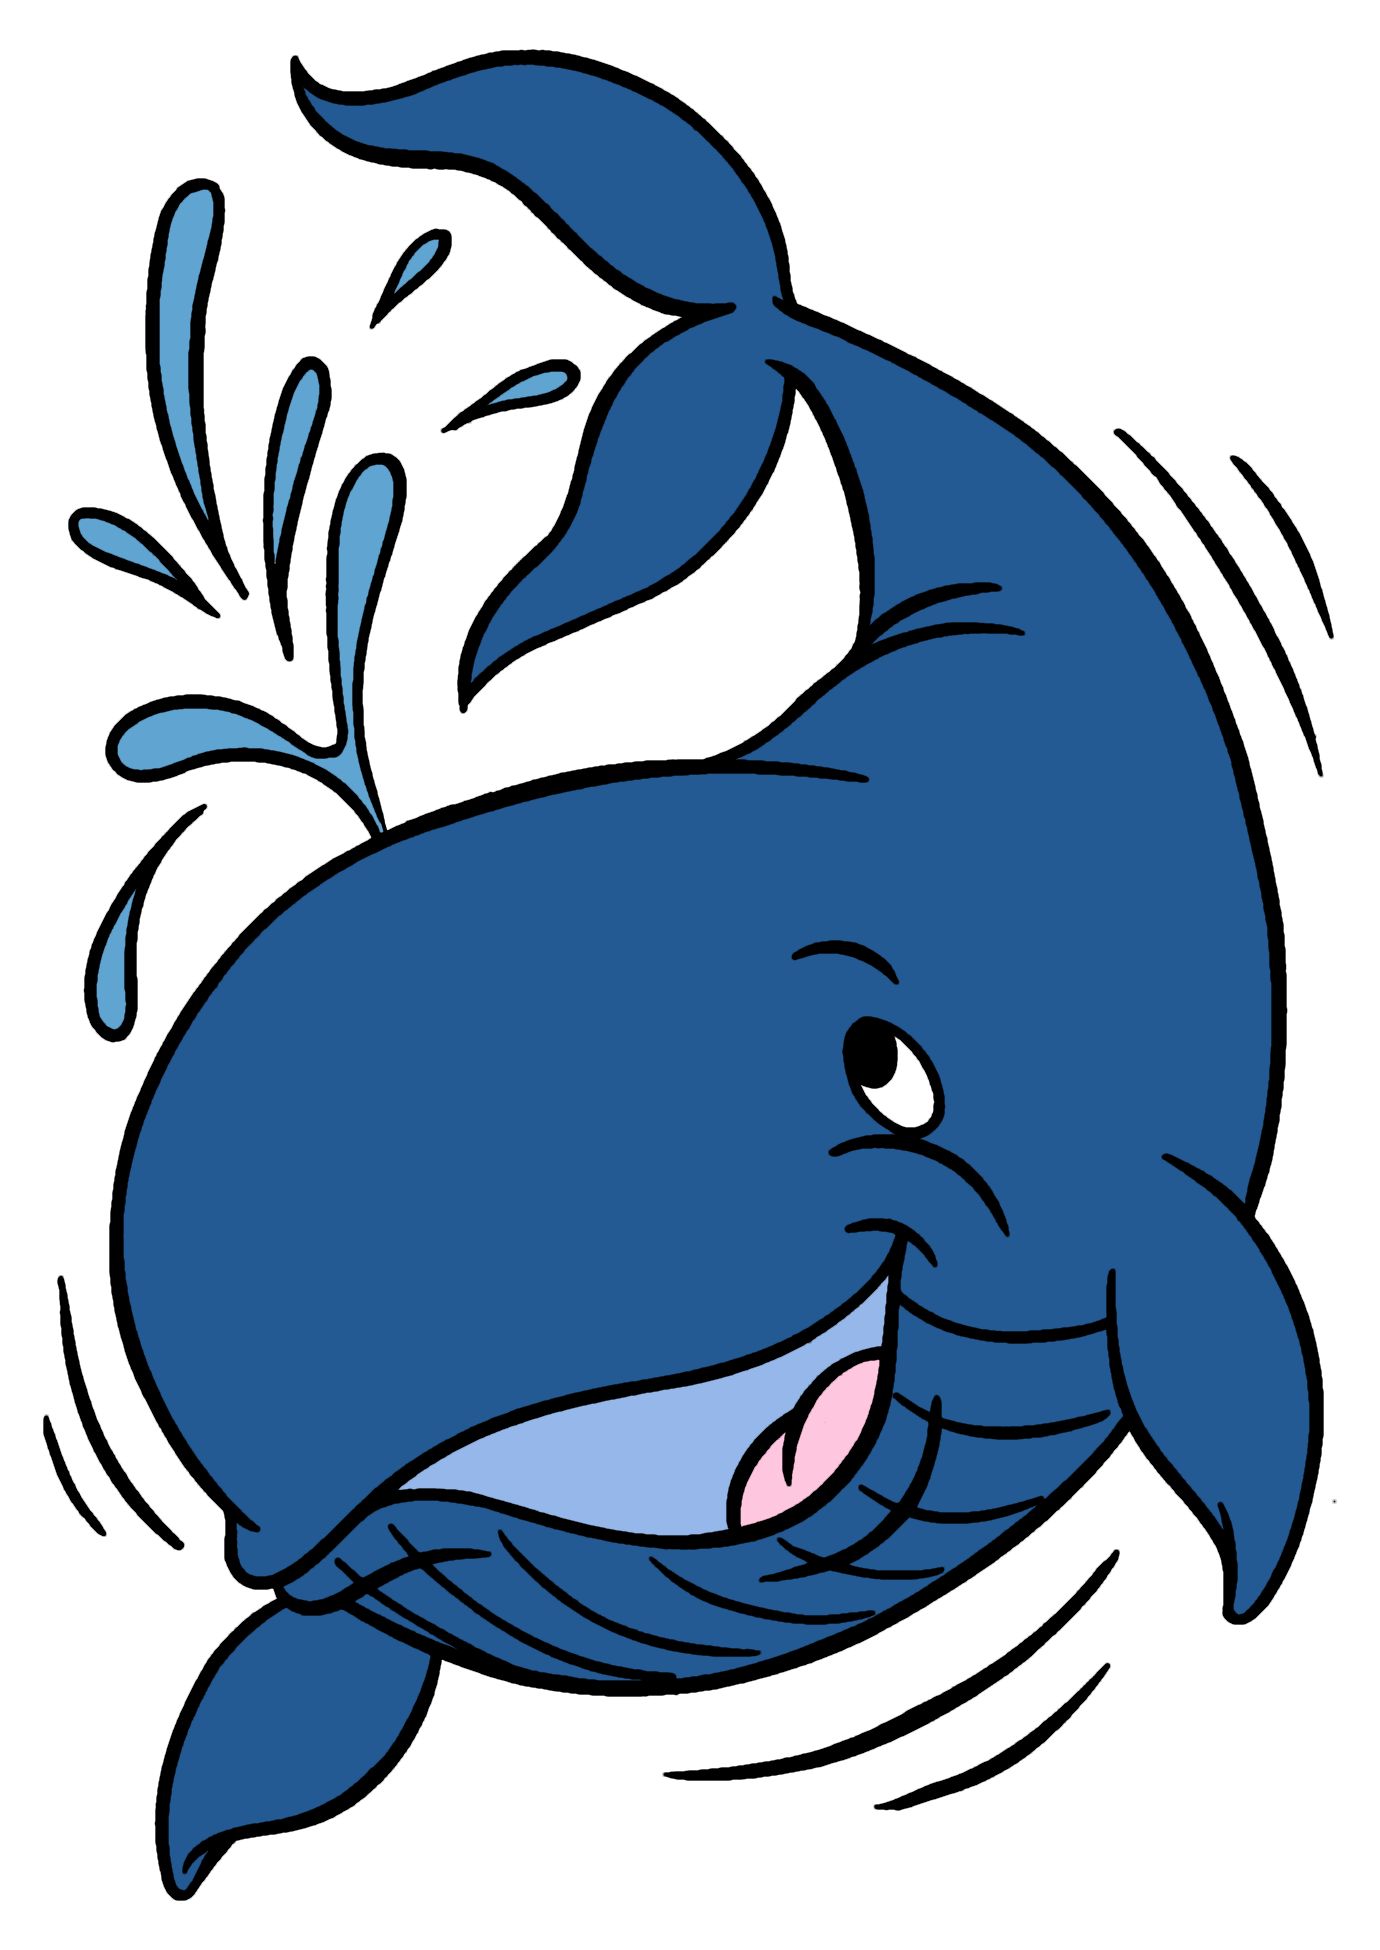 Whale crafts pinterest vbs. Dolphin clipart reading fun